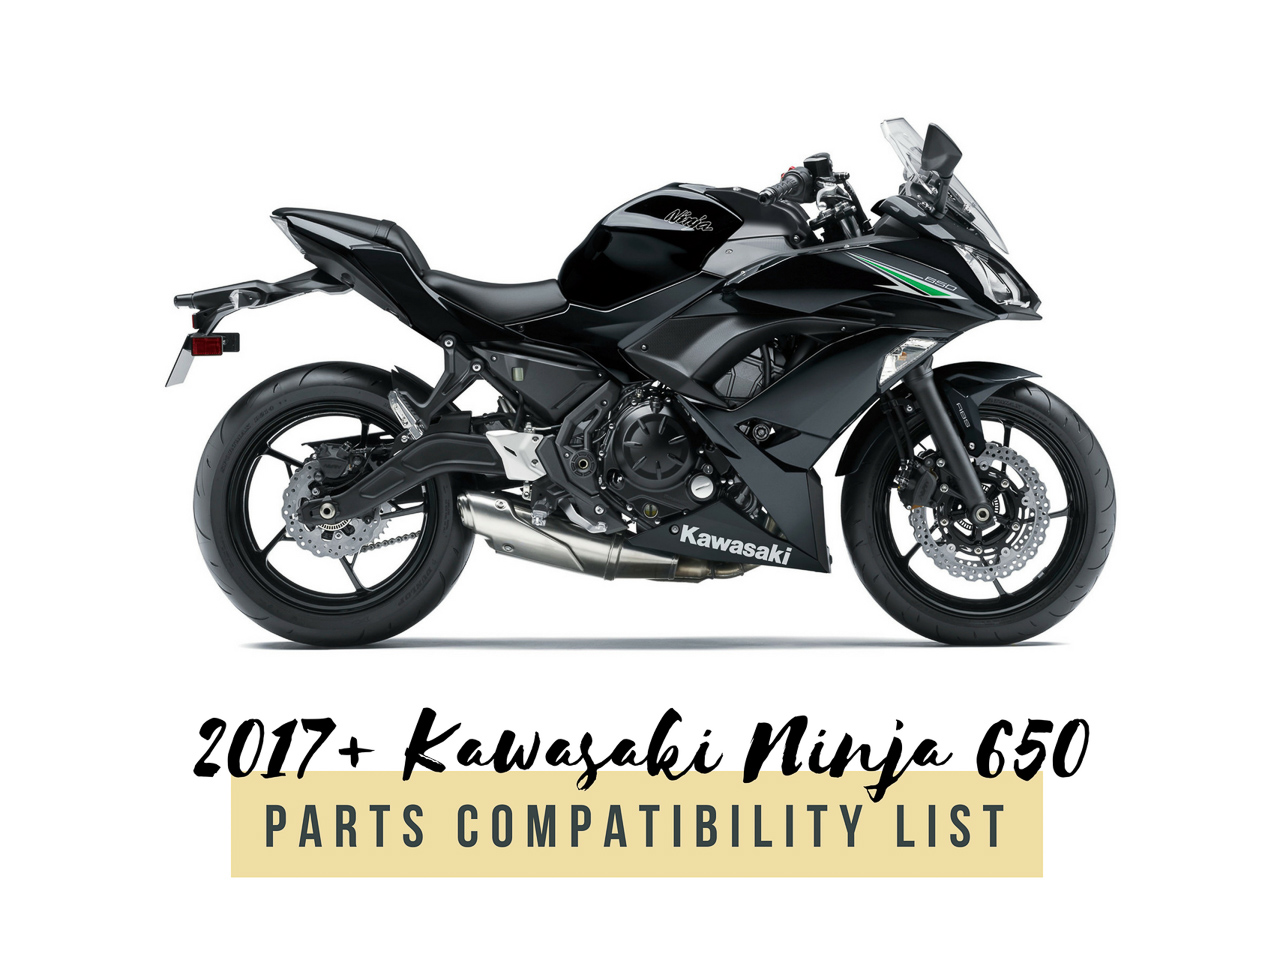 2017 Kawasaki Ninja 650 Parts Compatibility List - Title Thumbnail